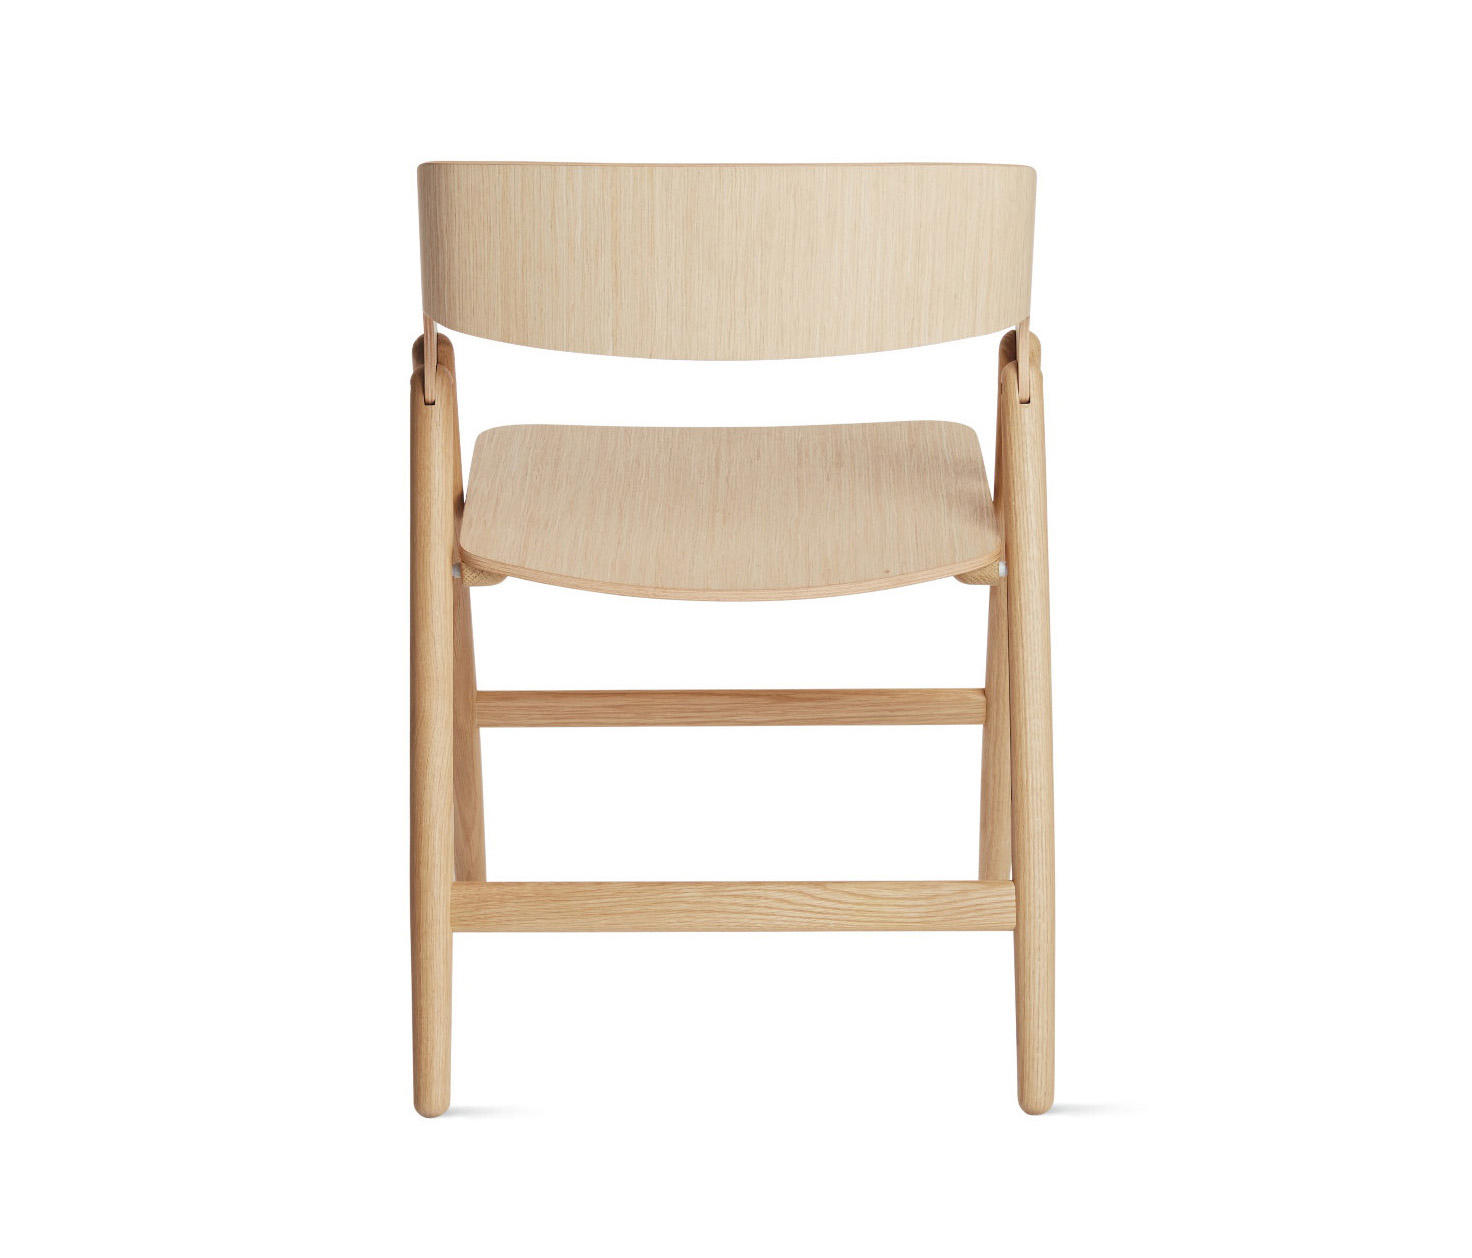 Super Narin Folding Chair Stuhle Von Design Within Reach Pabps2019 Chair Design Images Pabps2019Com